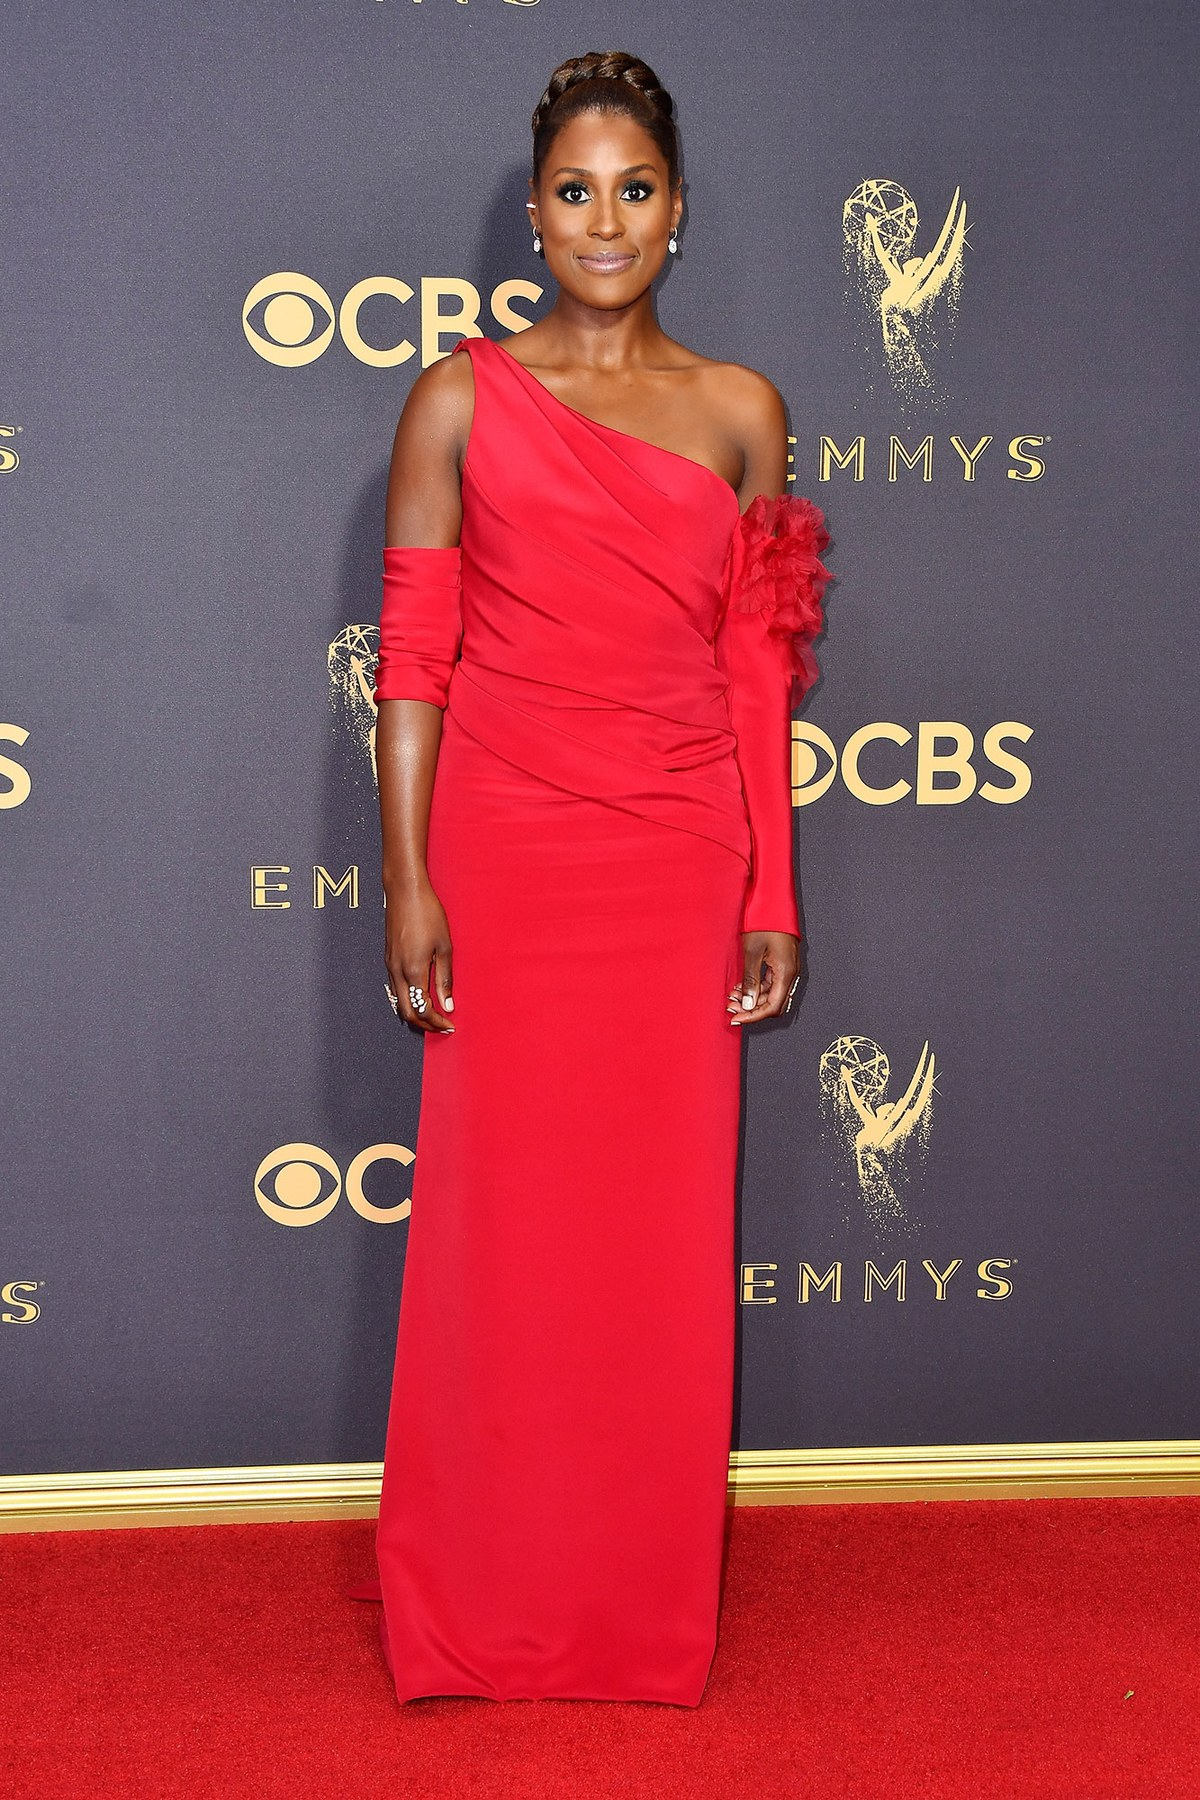 Issa Rae wearing custom Vera Wang